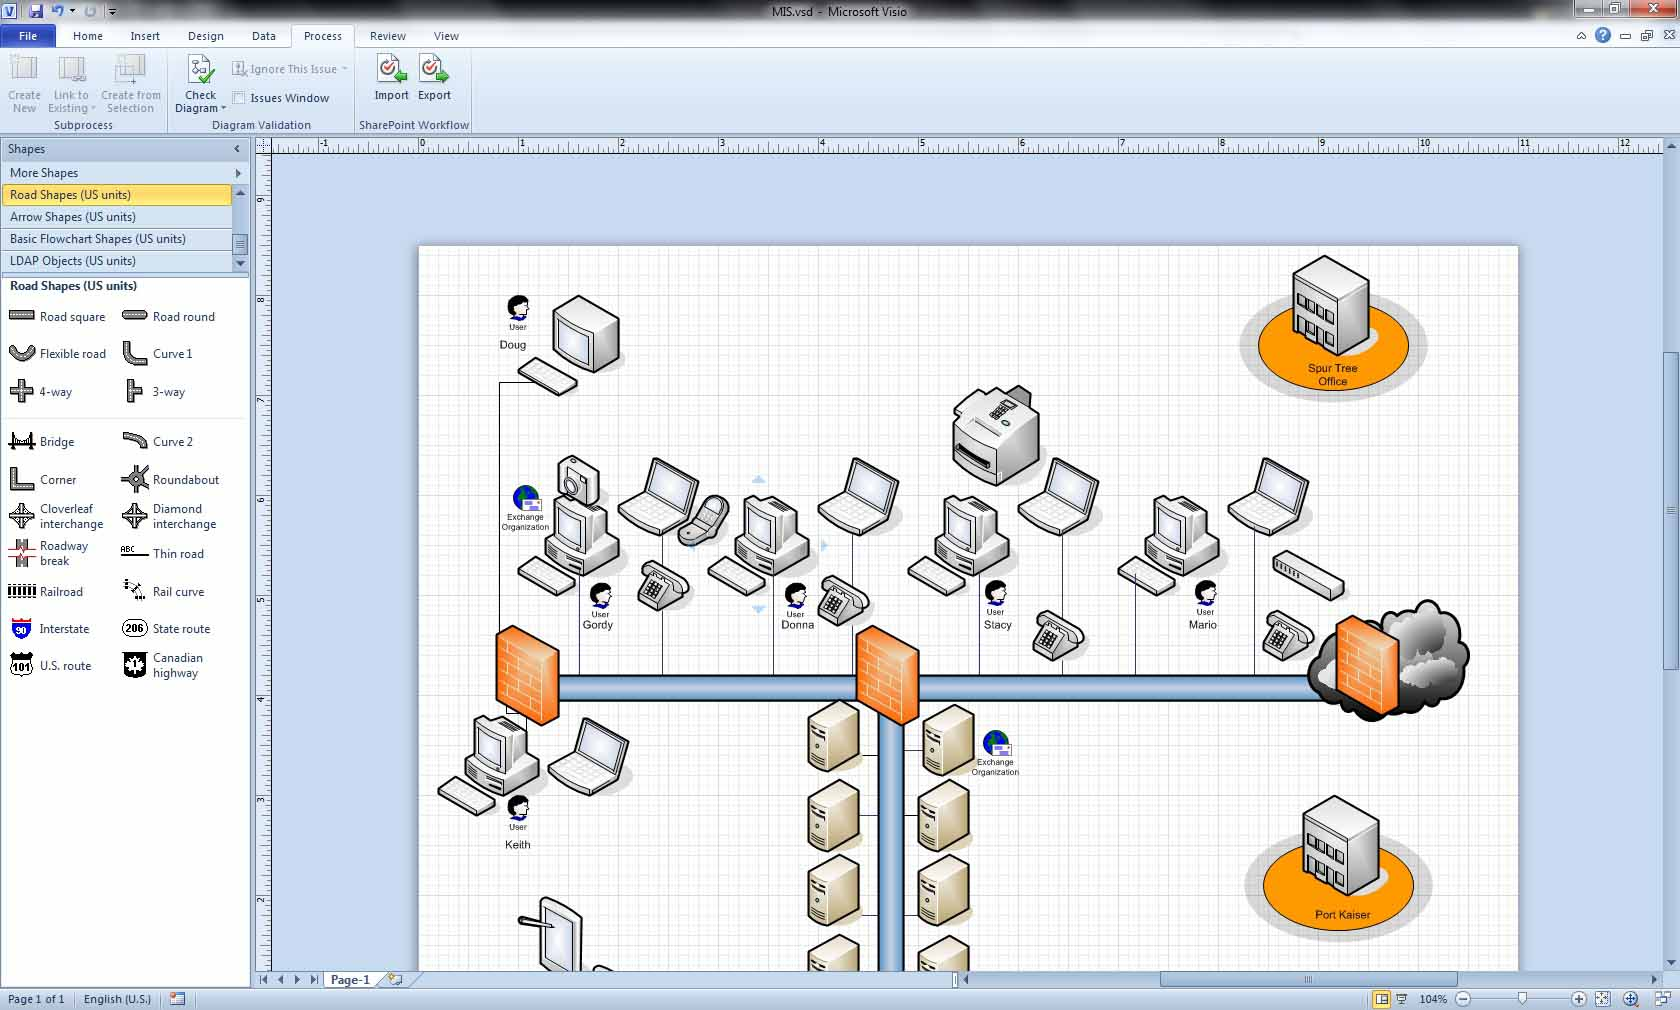 com microsoft visio premium 2010 review - Ms Visio 2010 Key